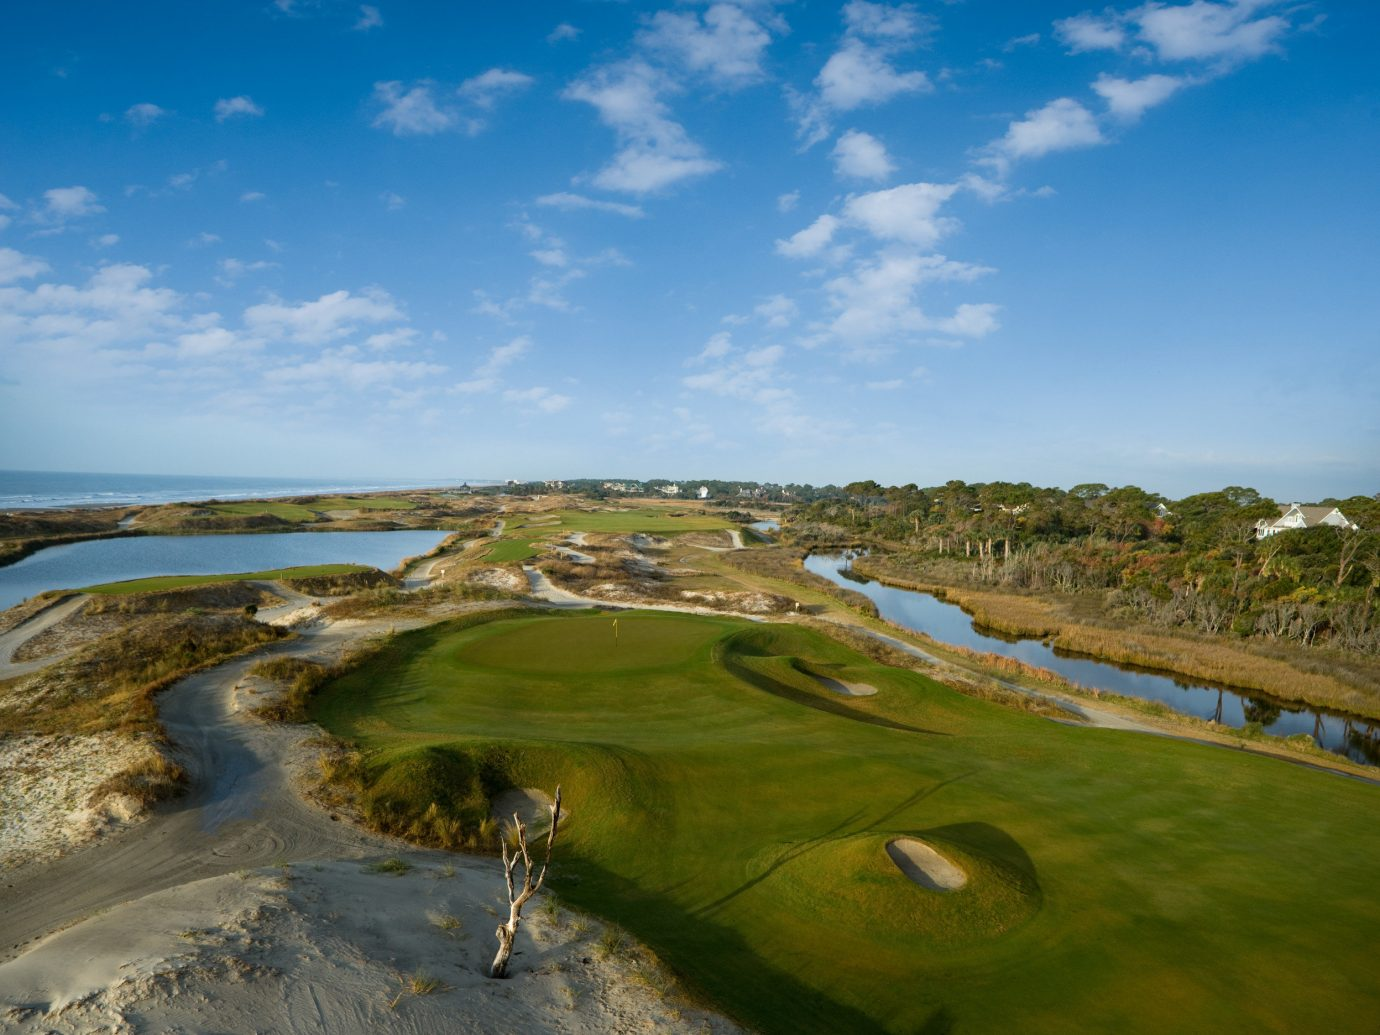 Beach East Coast USA Trip Ideas sky outdoor structure Nature aerial photography sport venue grass Sea atmosphere of earth cloud golf course hill Coast landscape rural area reflection sports day land highland